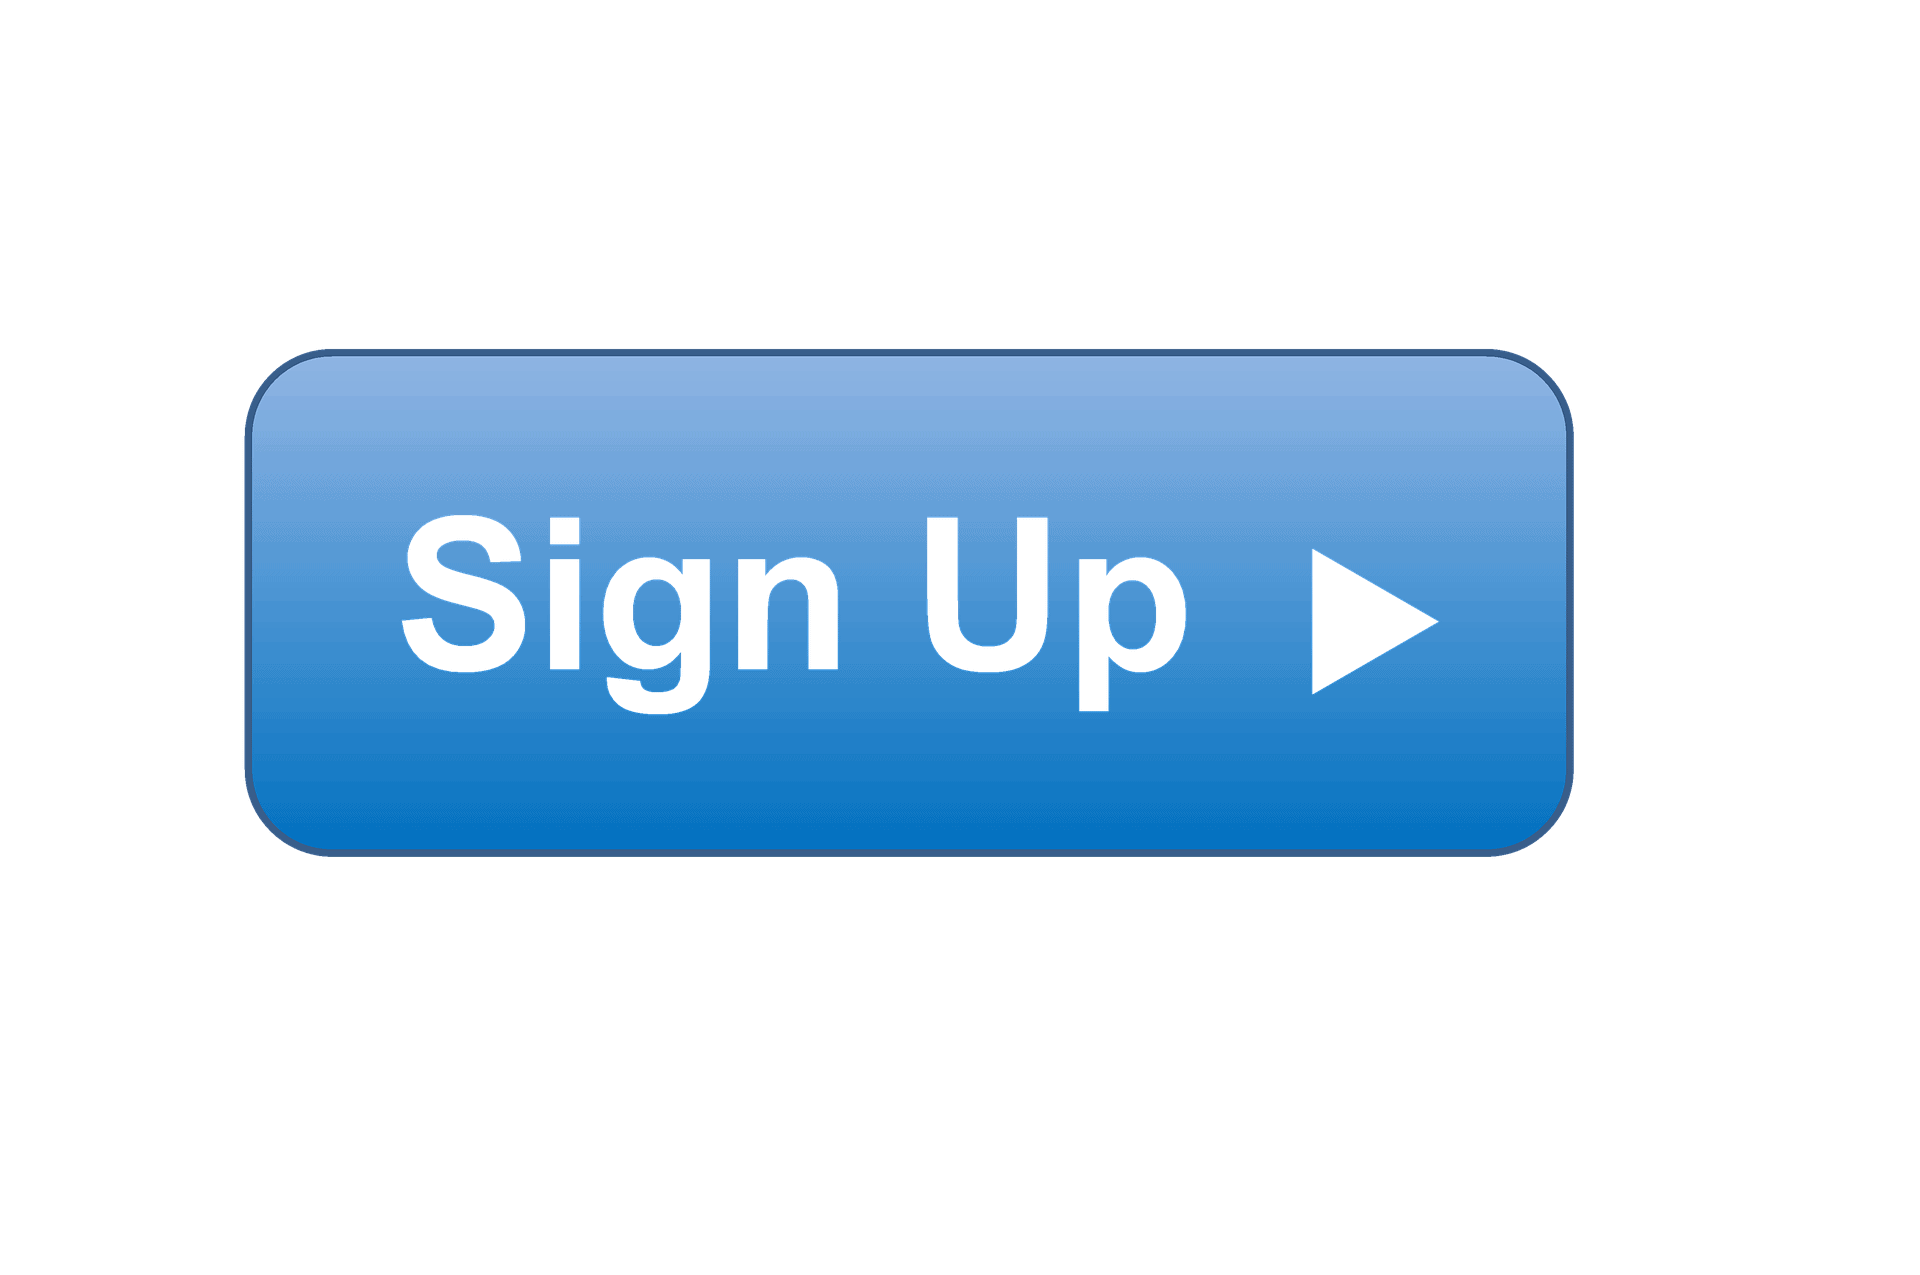 logo sign up